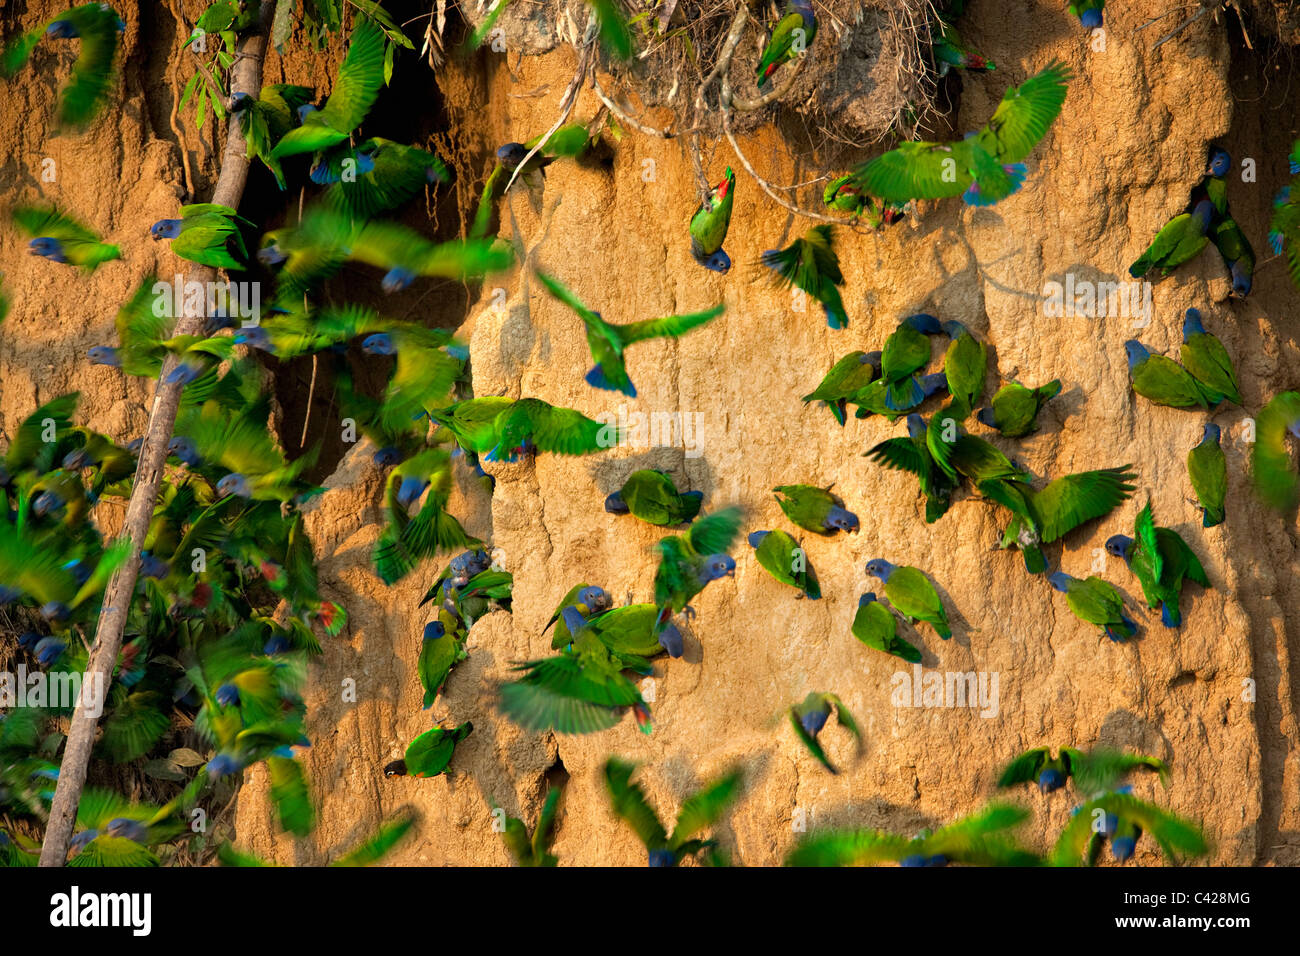 Manu National Park, Blue Headed Parrots ( Pionus menstruus ) ingesting clay from Tambo Blanquillo clay lick. - Stock Image